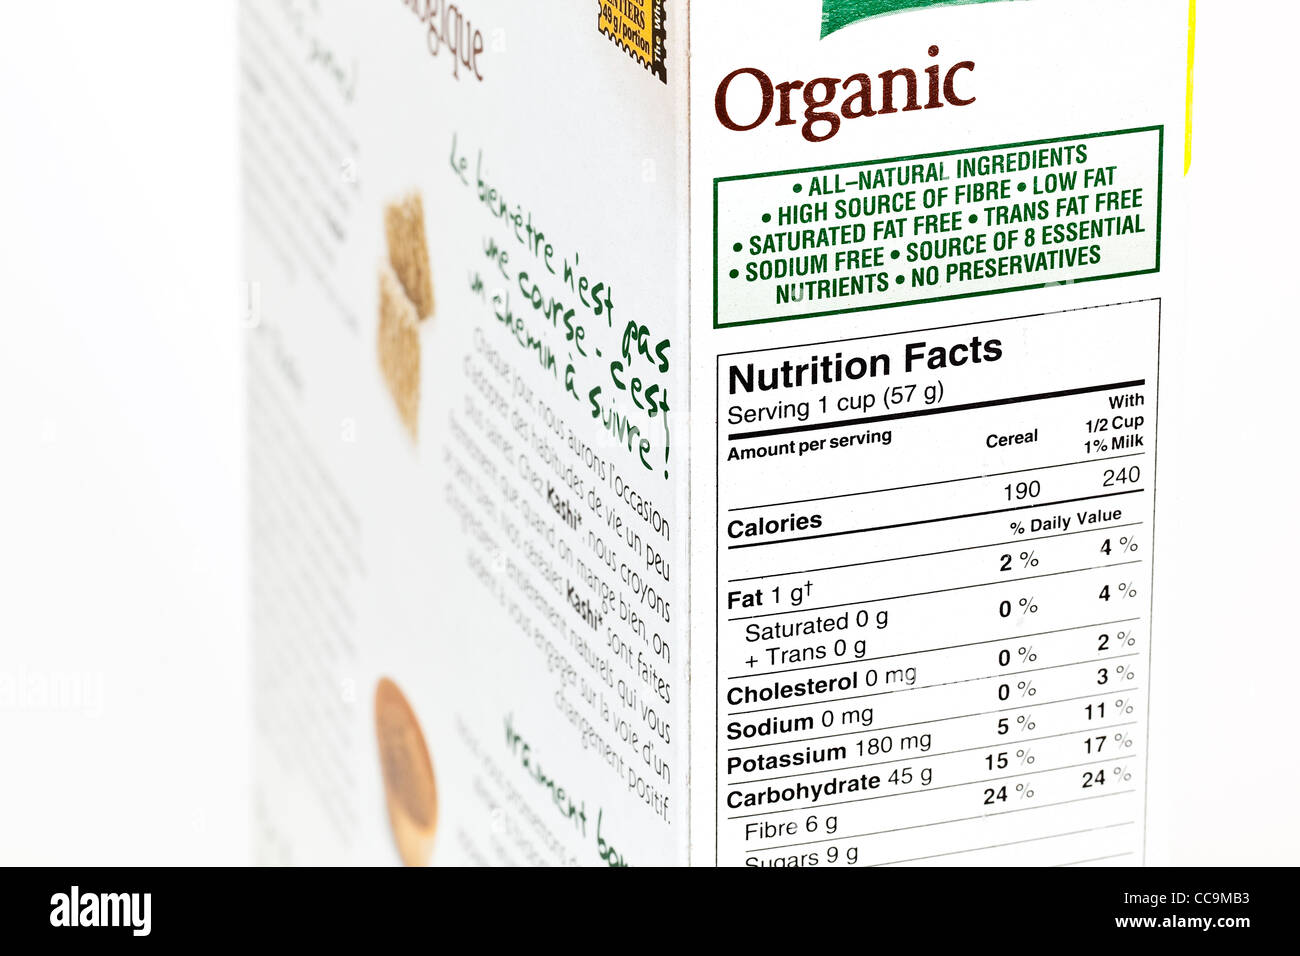 Organic cereal box, nutrition label, close up. - Stock Image